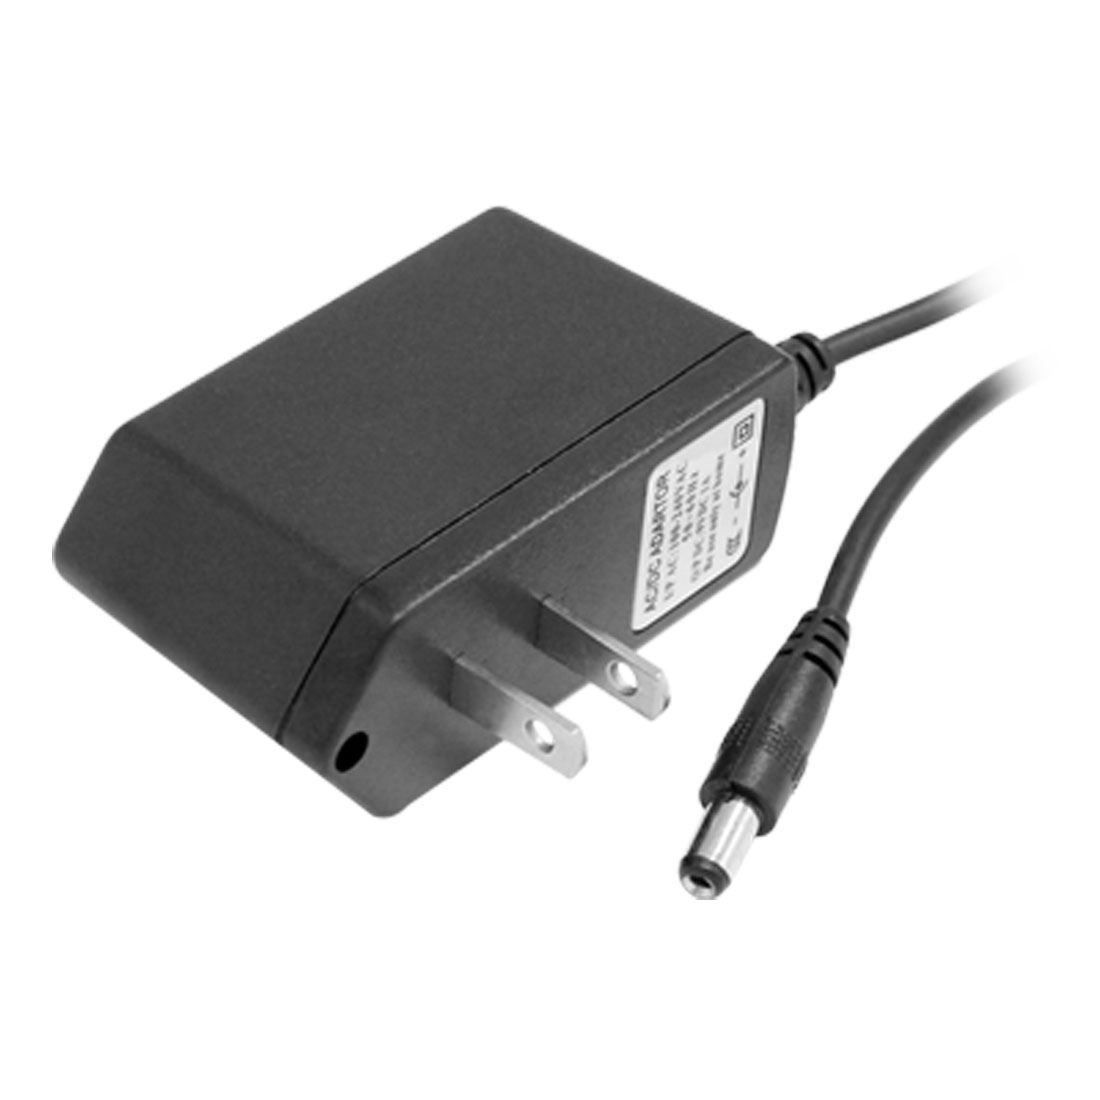 100-240VAC Power Supply Adapter Dual Terminal US Plug for CCTV Camera